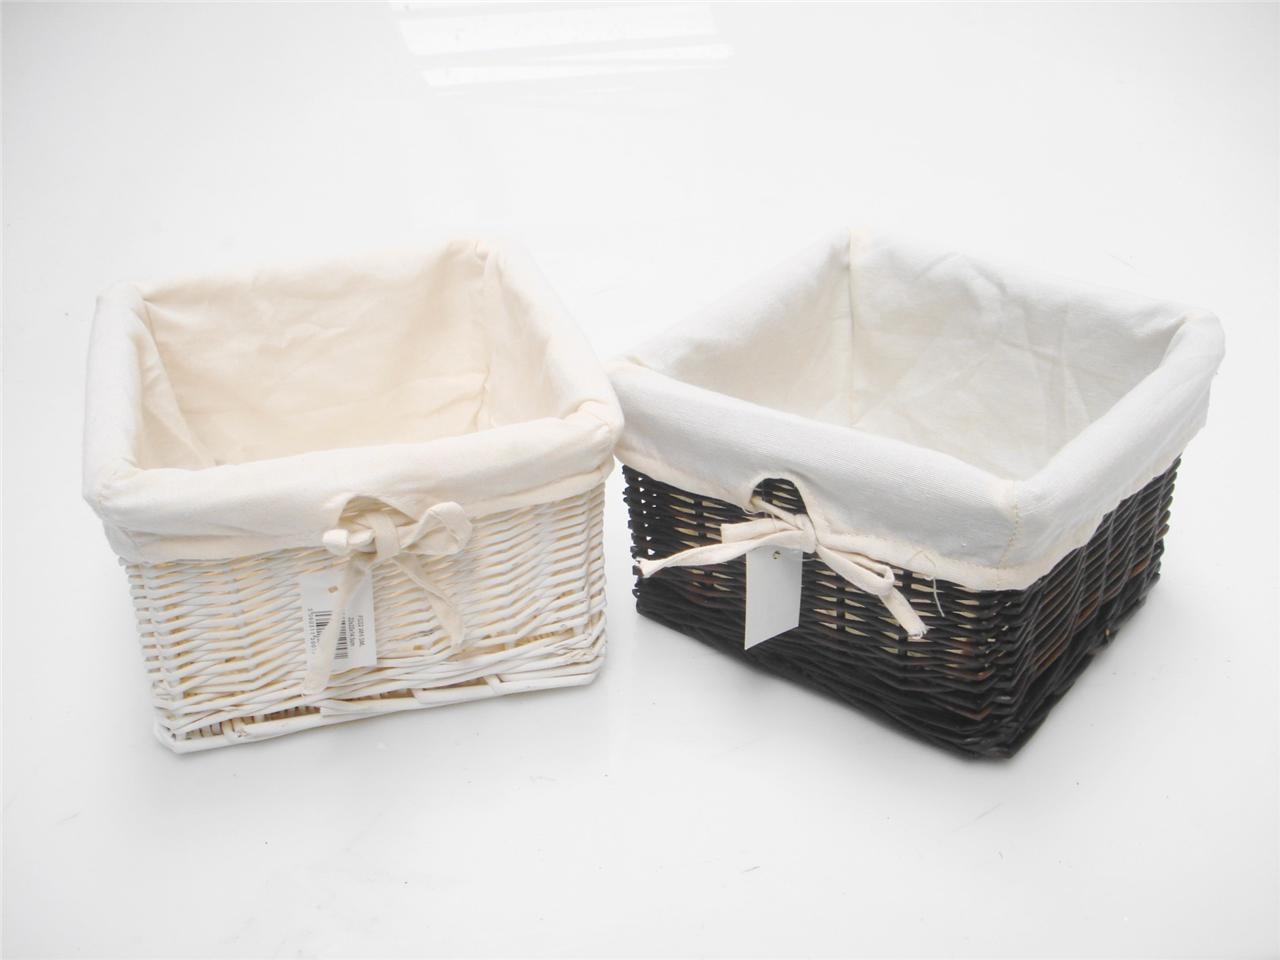 Small Wicker Hamper Brown Or White Small Wicker Storage Kitchen Bedroom Office